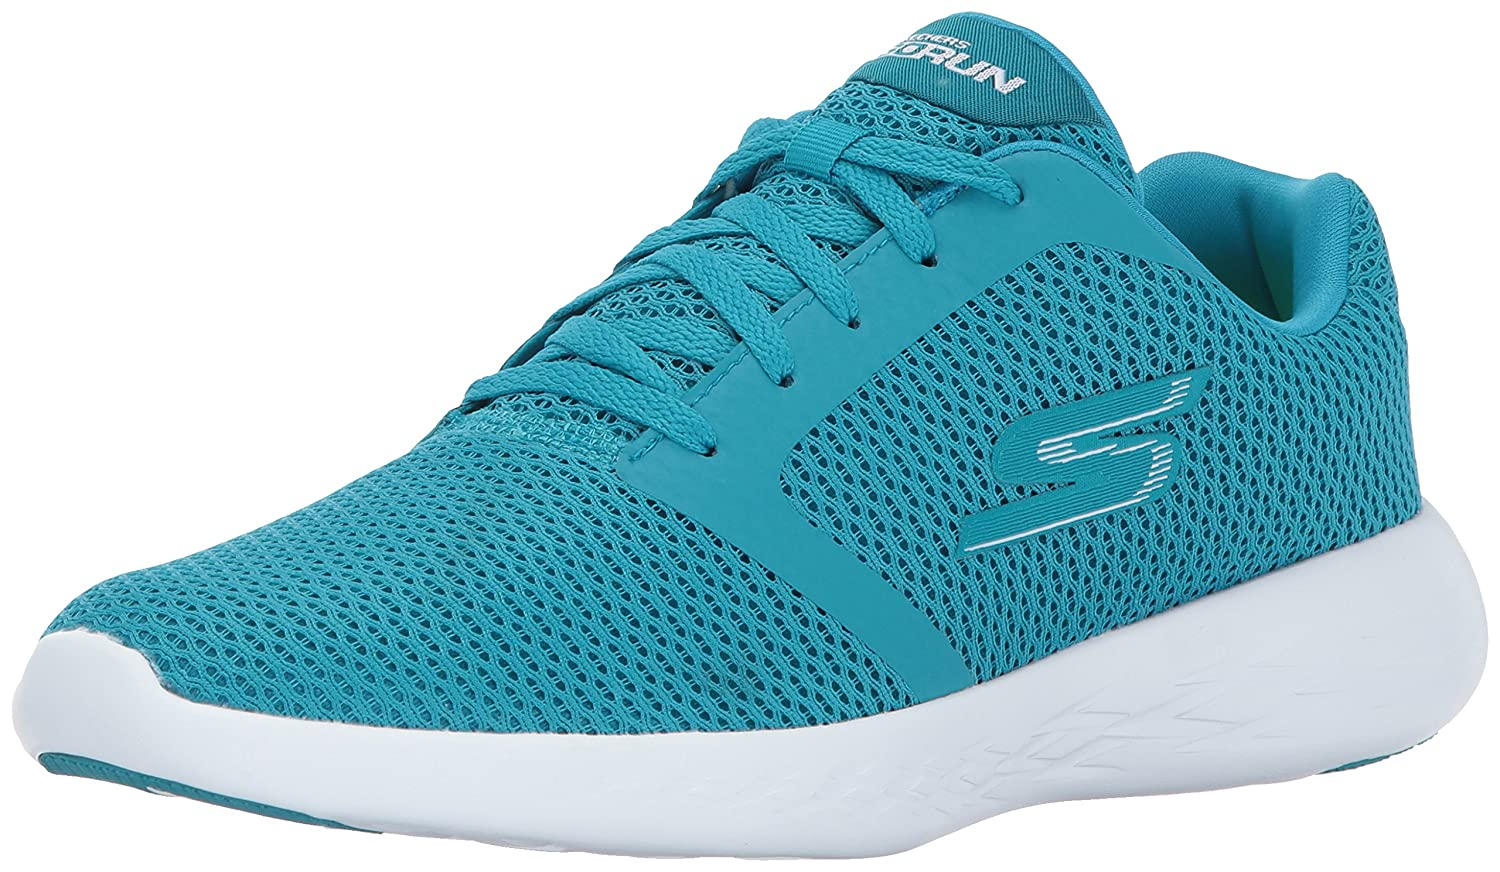 Skechers Women's Go Run 600-15061 Walking Shoe B01MZ9T10W 7.5 B(M) US|Turquoise